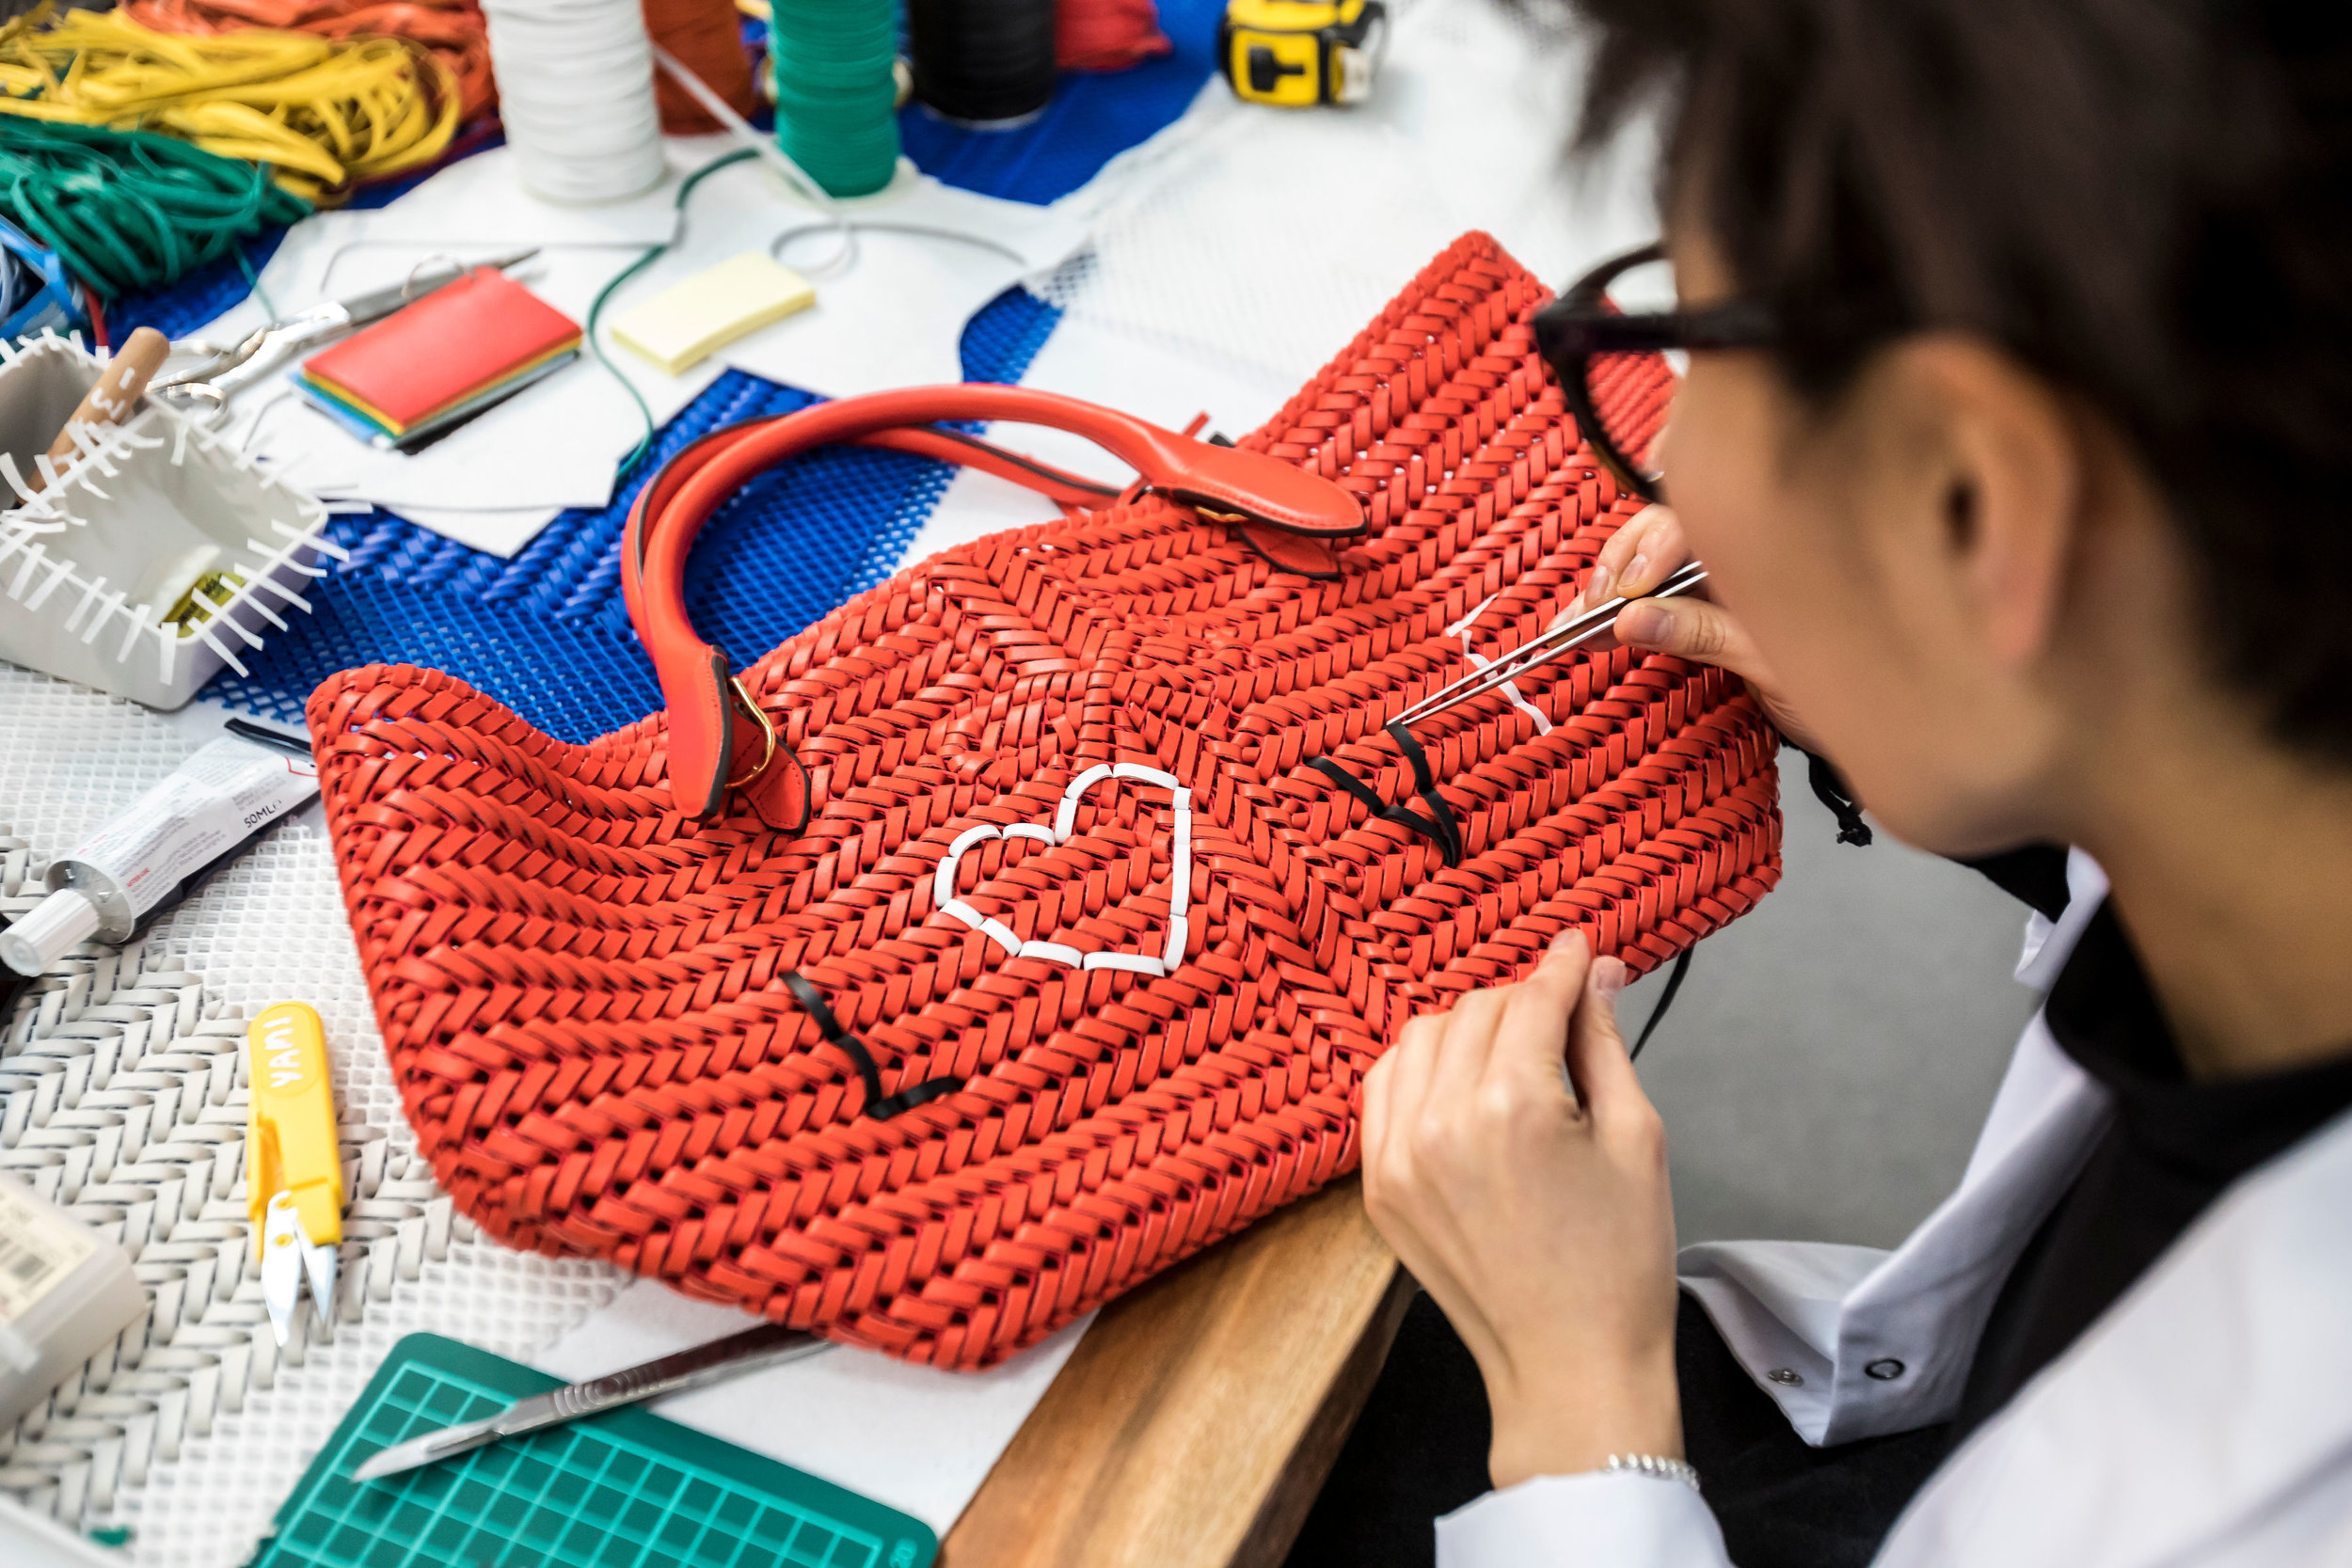 Anya Hindmarch Weave Project. The in-house creatives working on the Anya Hindmarch Neeson Collection